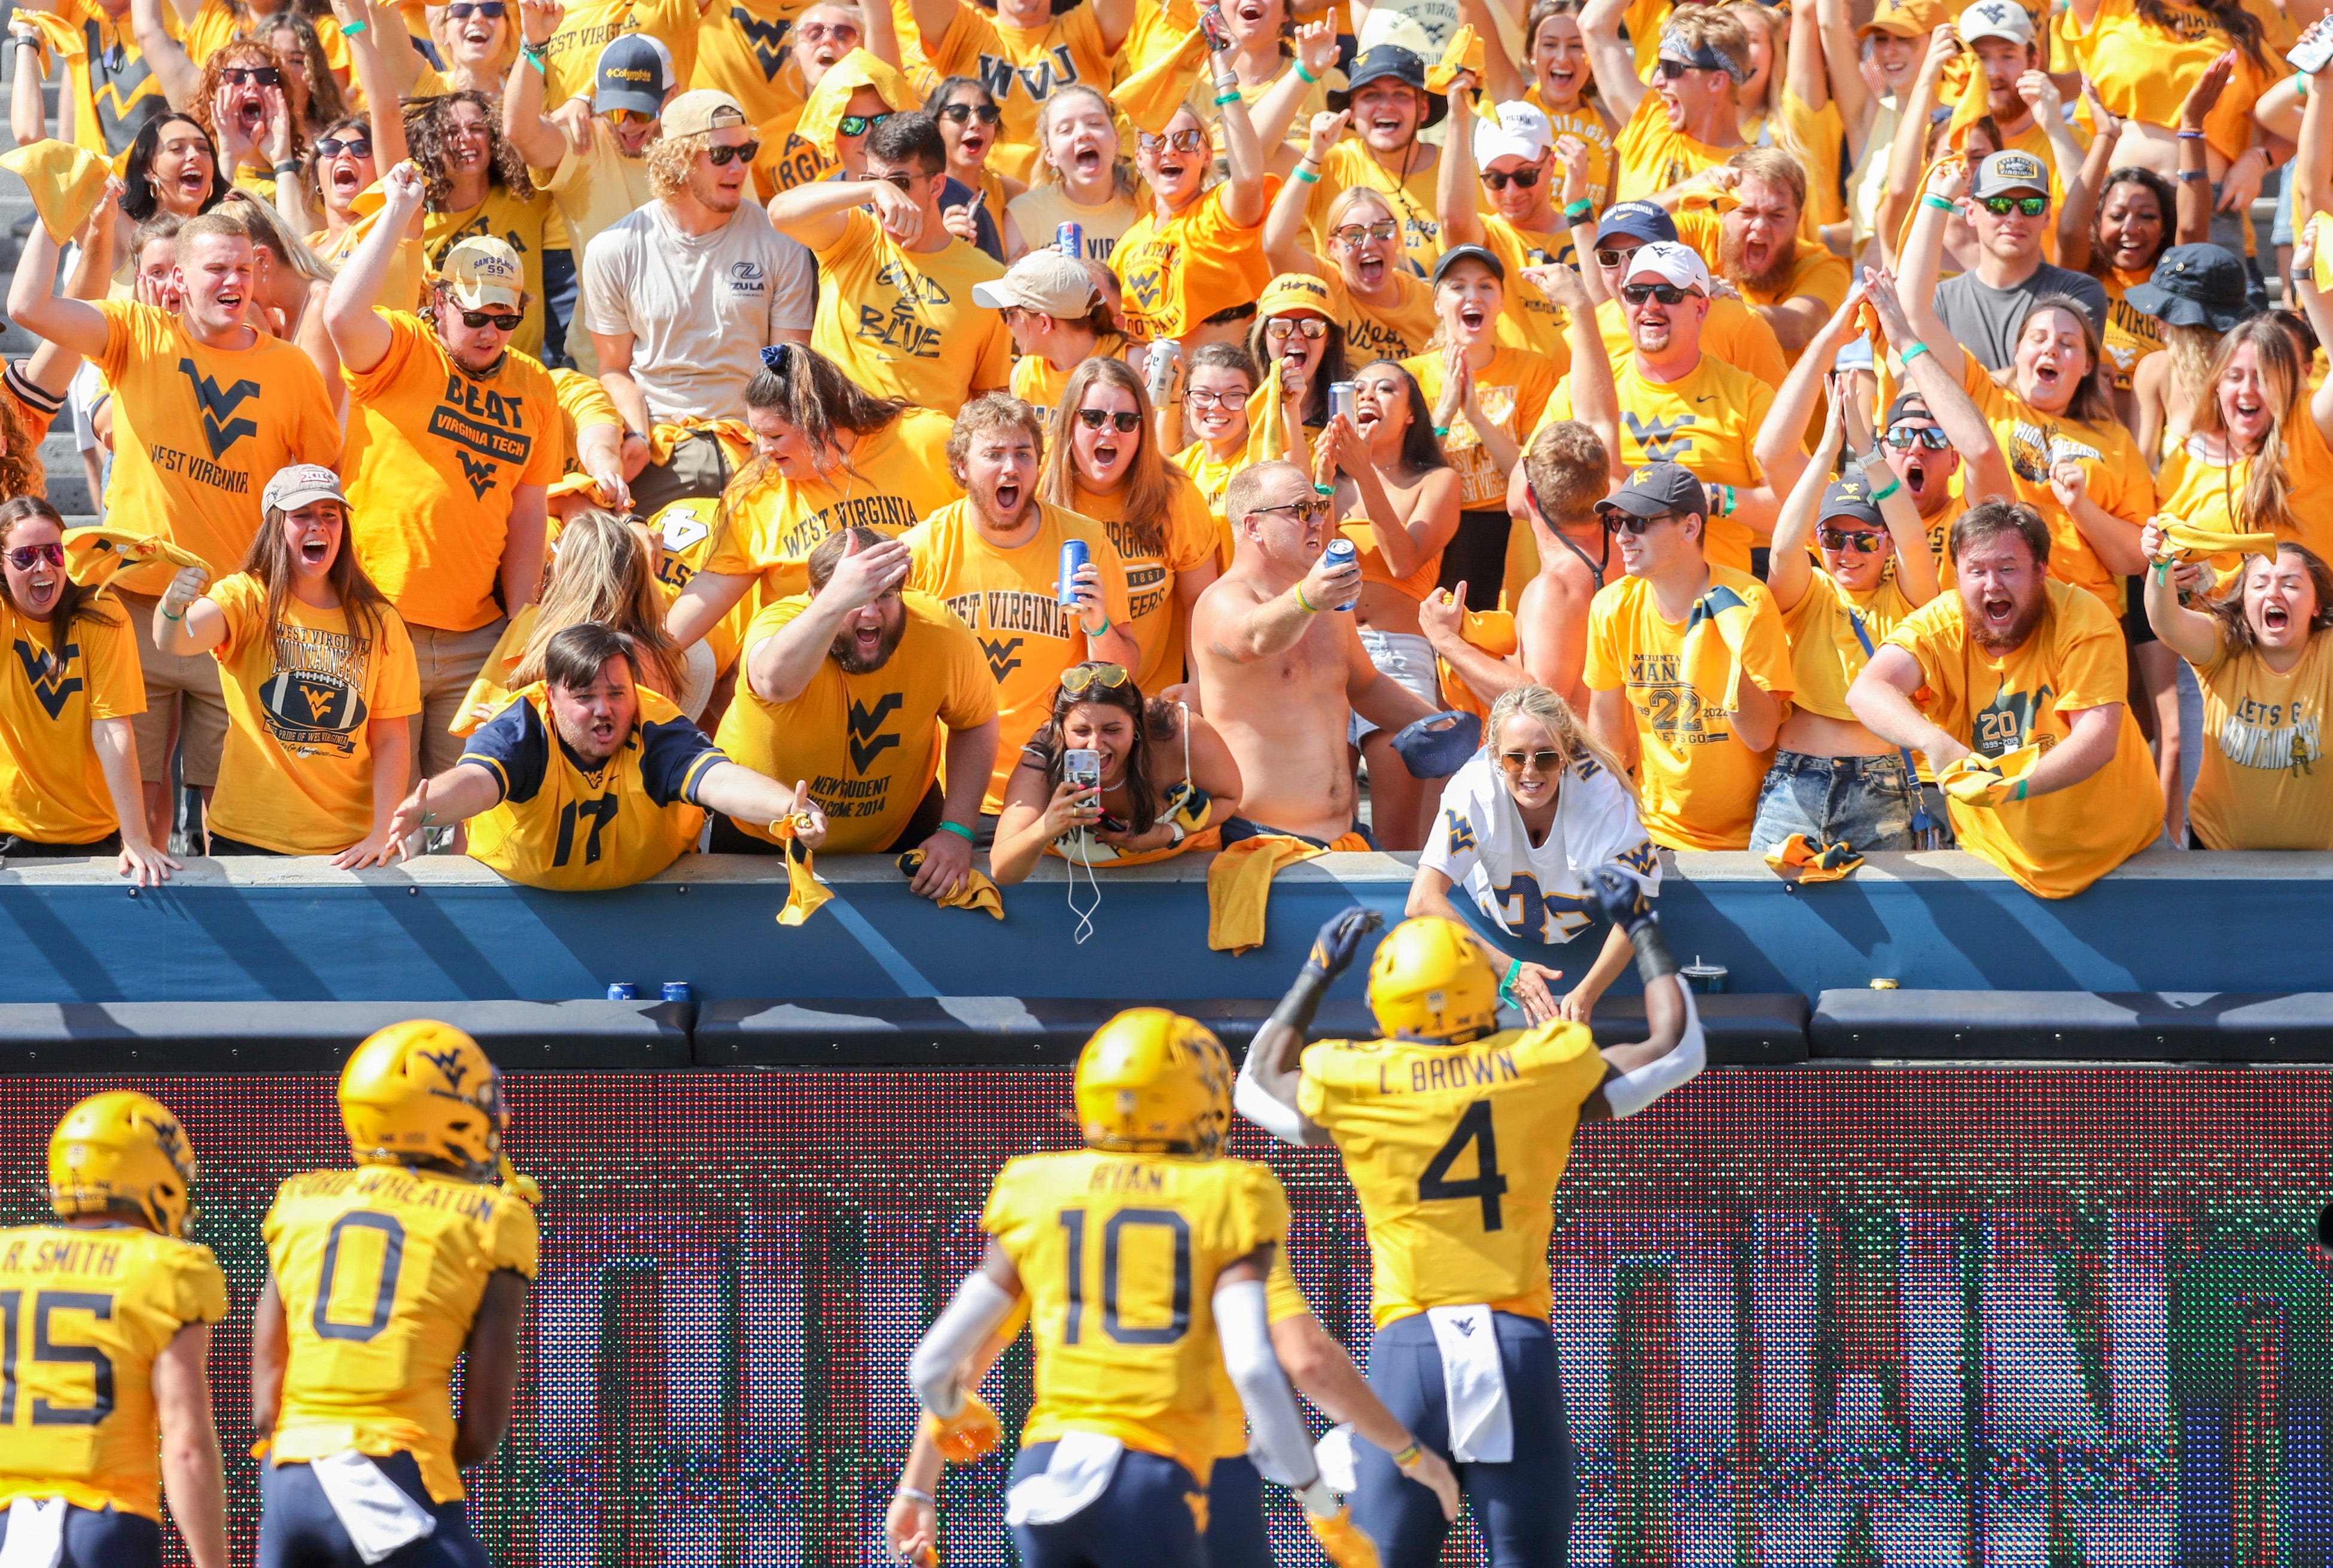 West Virginia upends No. 15 Virginia Tech, stops late scoring drive on downs